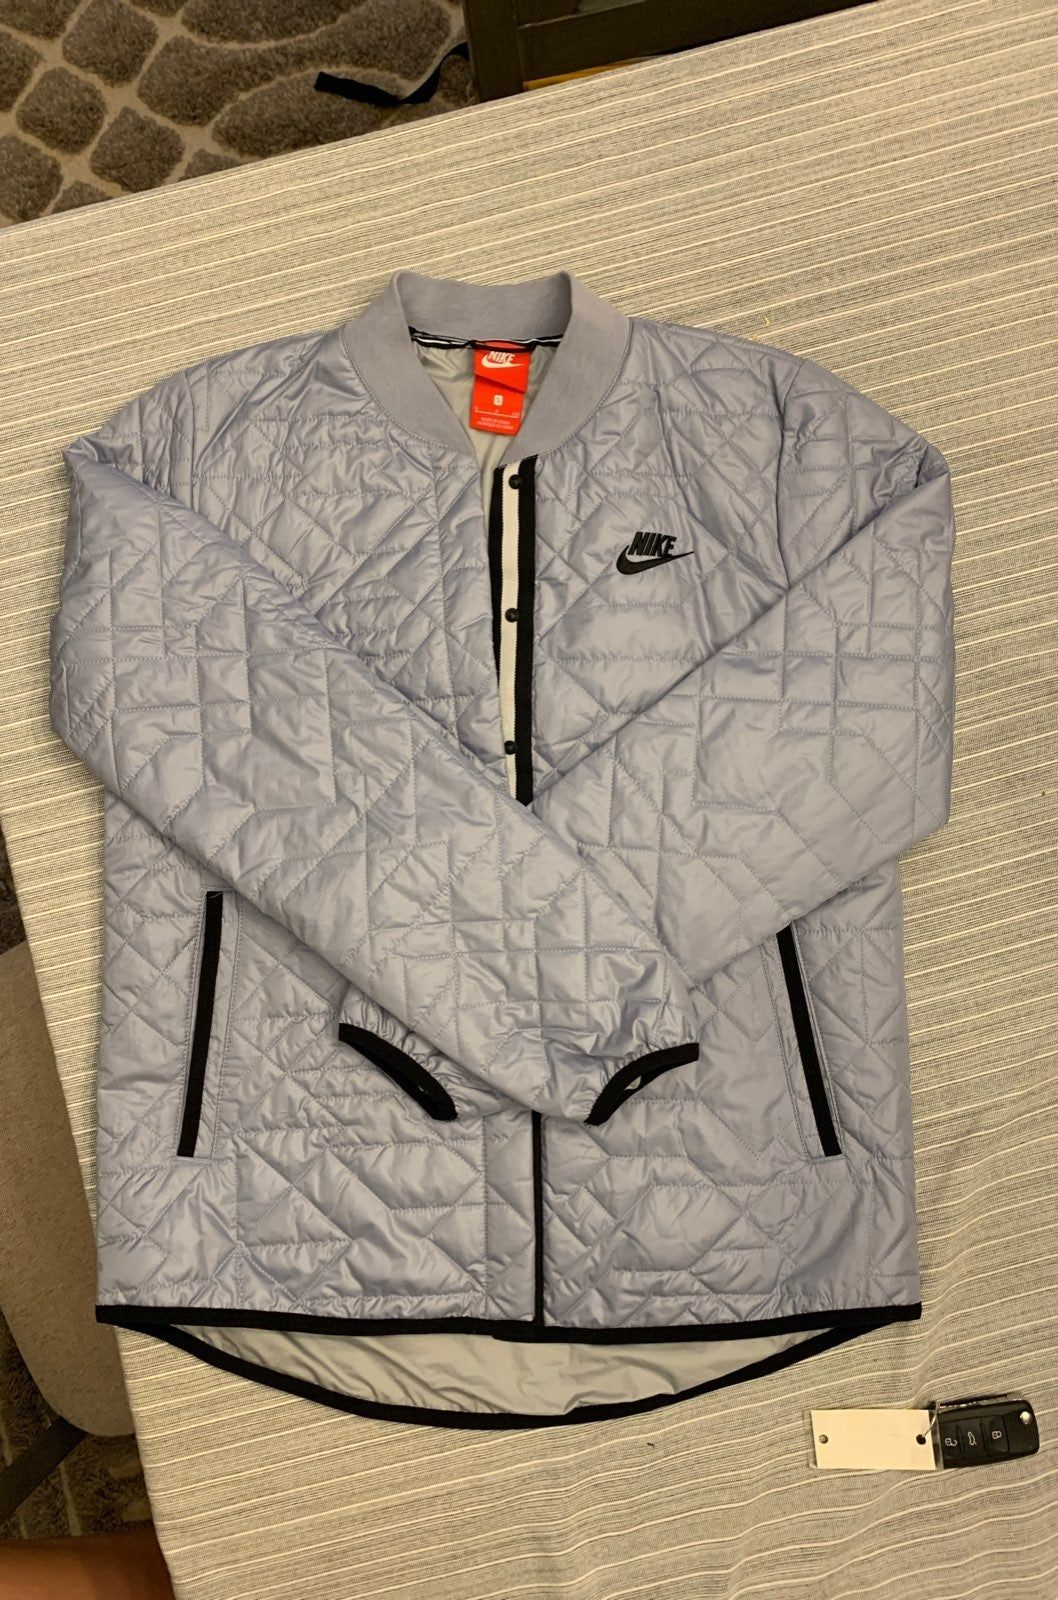 Super Cute Nike Bomber Jacket With A Quilted Pattered Slightly Insulated Button Closure All The Way Down And Nike Bomber Jacket Bomber Jacket Fashion Jackets [ 1600 x 1058 Pixel ]